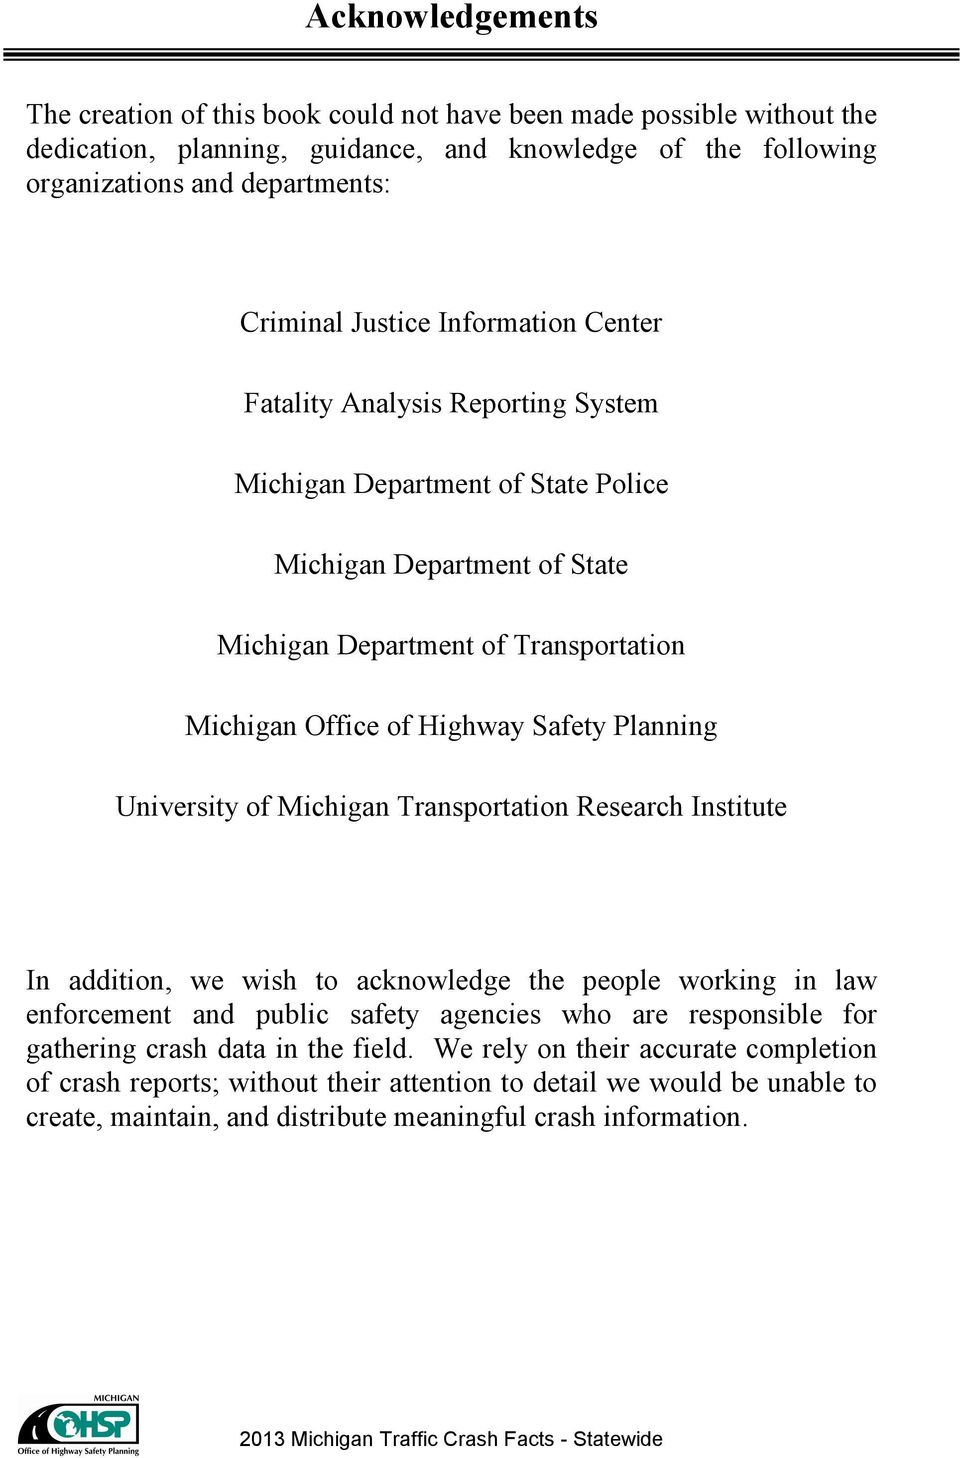 University of Michigan Transportation Research Institute In addition, we wish to acknowledge the people working in law enforcement and public safety agencies who are responsible for gathering crash